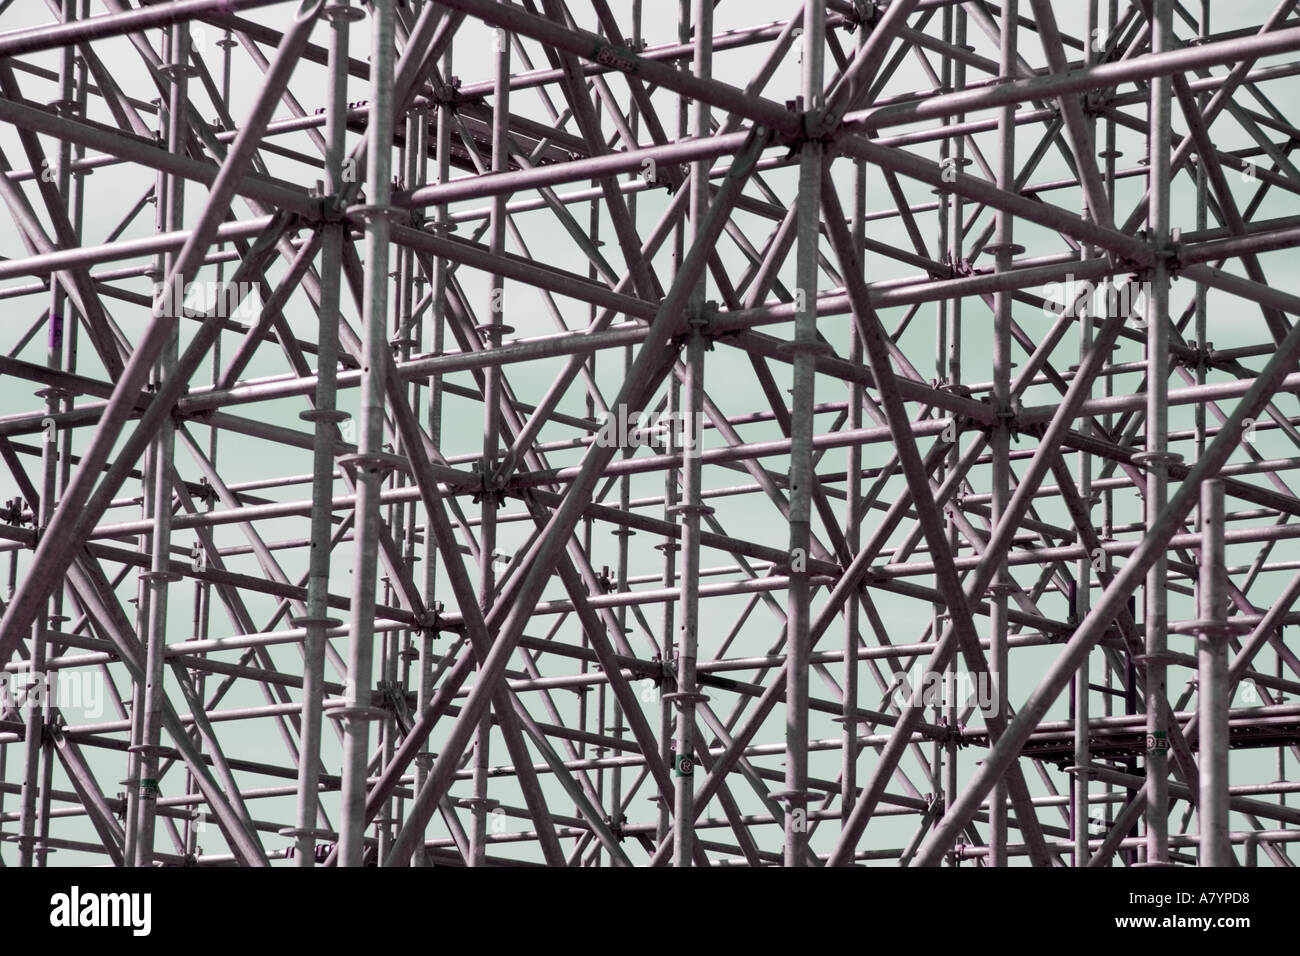 Pattern created by scaffolding - Stock Image